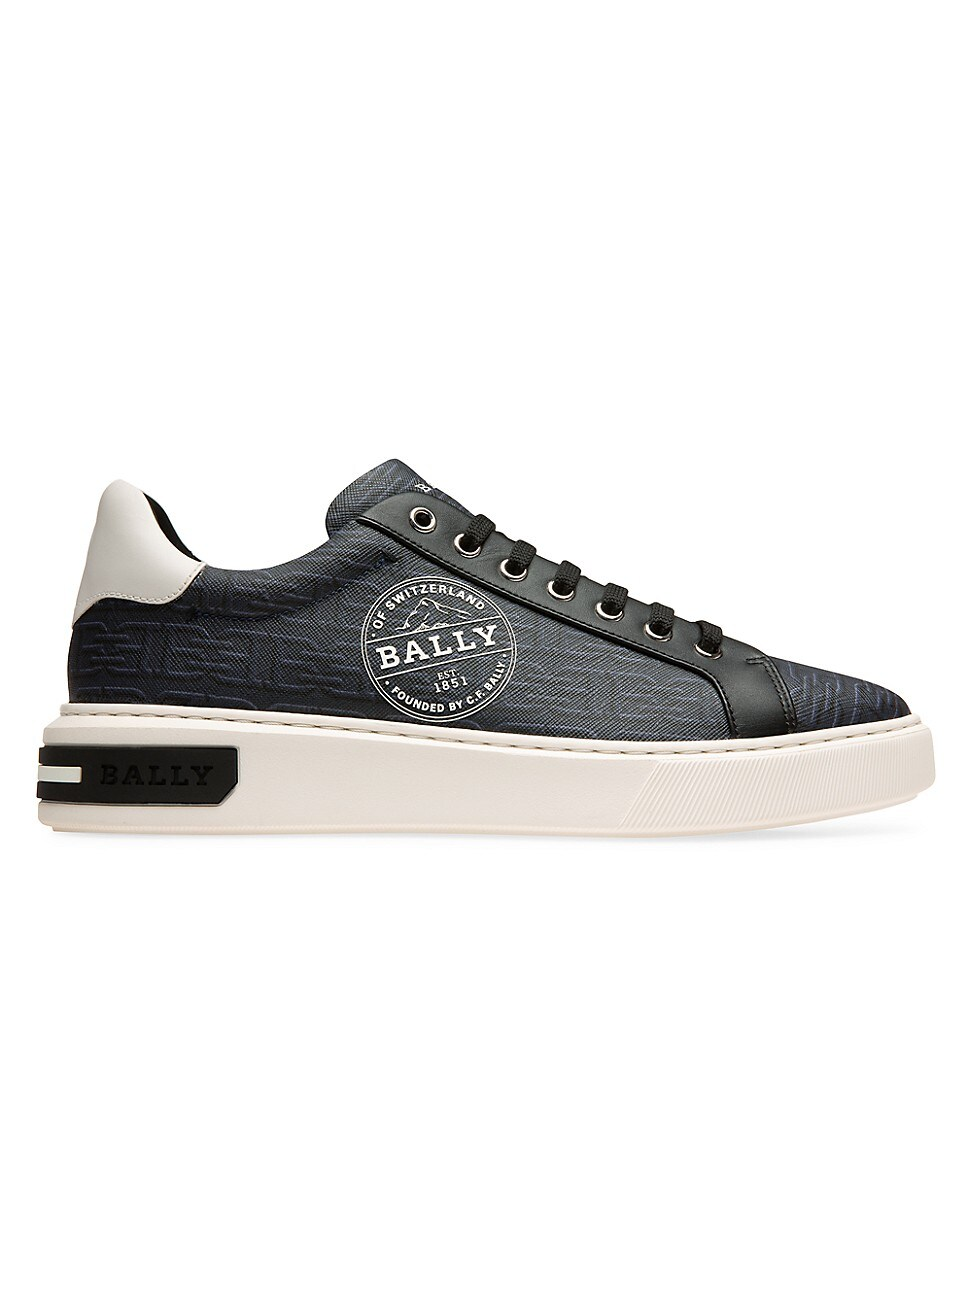 Bally MEN'S MIKY LEATHER SNEAKERS